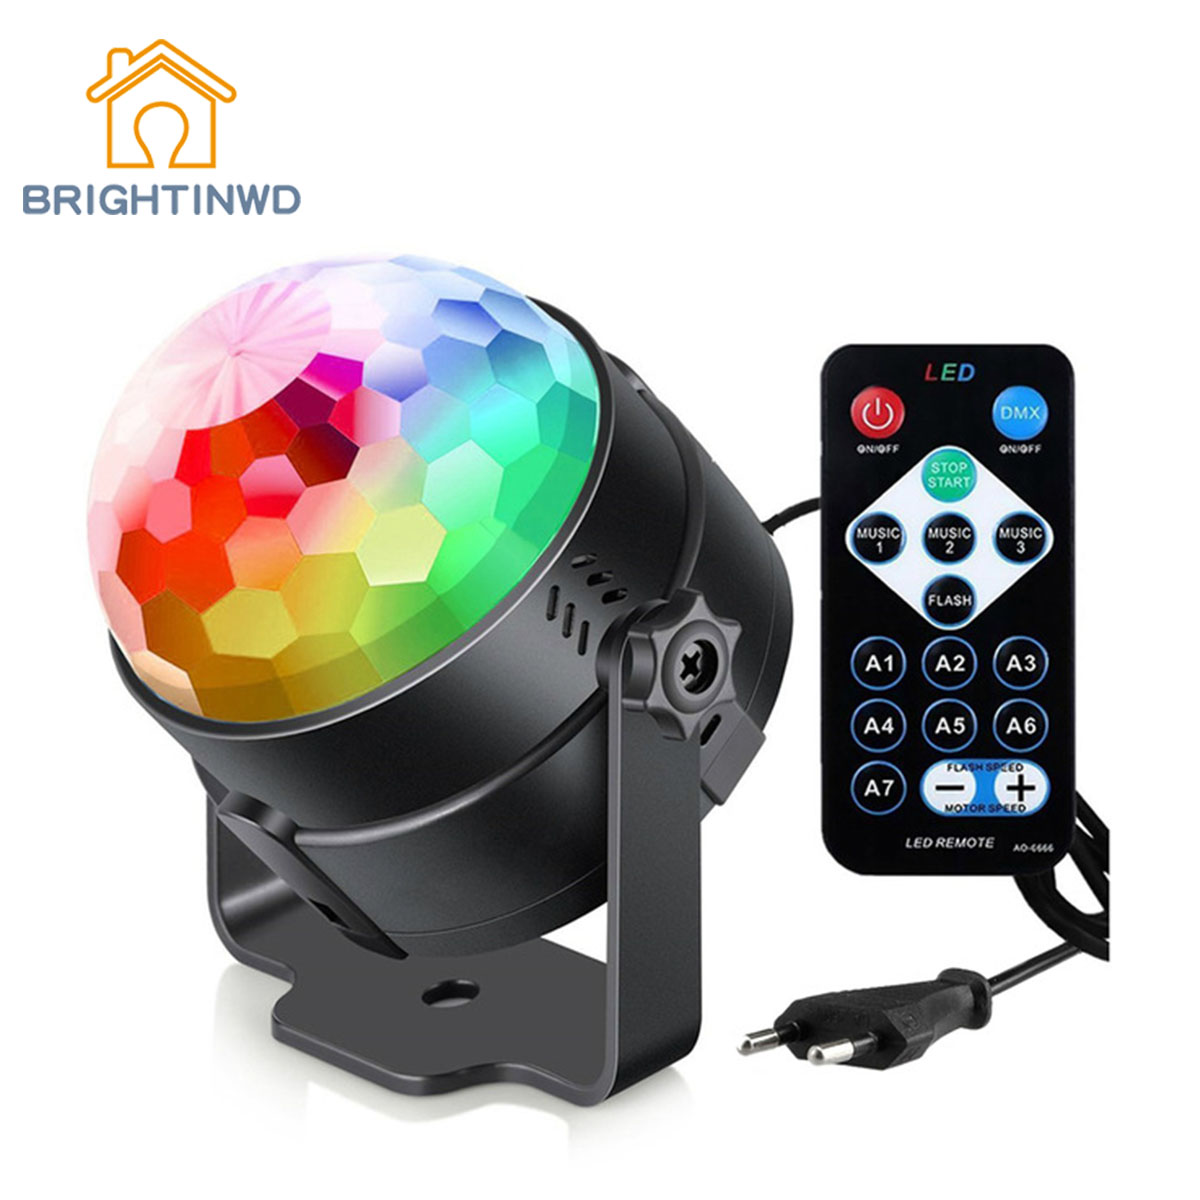 DJ KTV Disco DMX Laser Light Christmas Projector Party Lamp Sound Remote Strobe Effects RGB Disco Lamp Ball LED Stage Lighting 2pcs par 24w rgb led stage light disco dj bar christmas wedding party laser projector lighting dmx 512 strobe lo